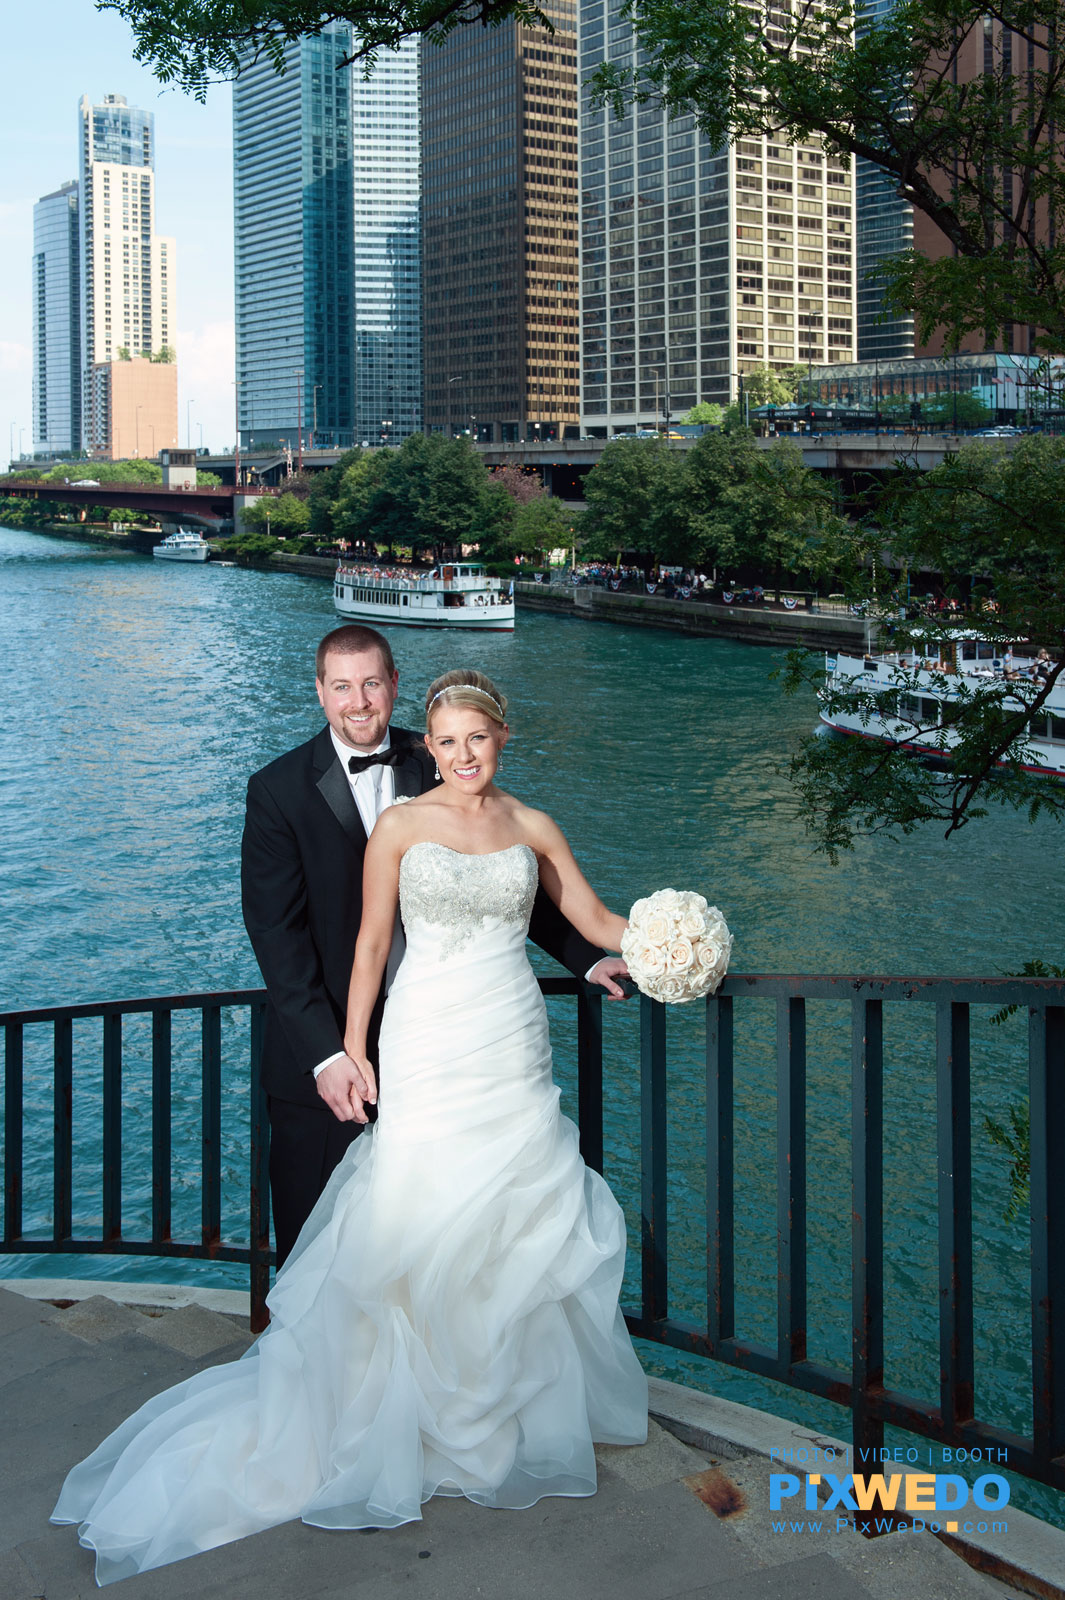 Bride and Groom at Chicago River and Michigan Ave Bridge